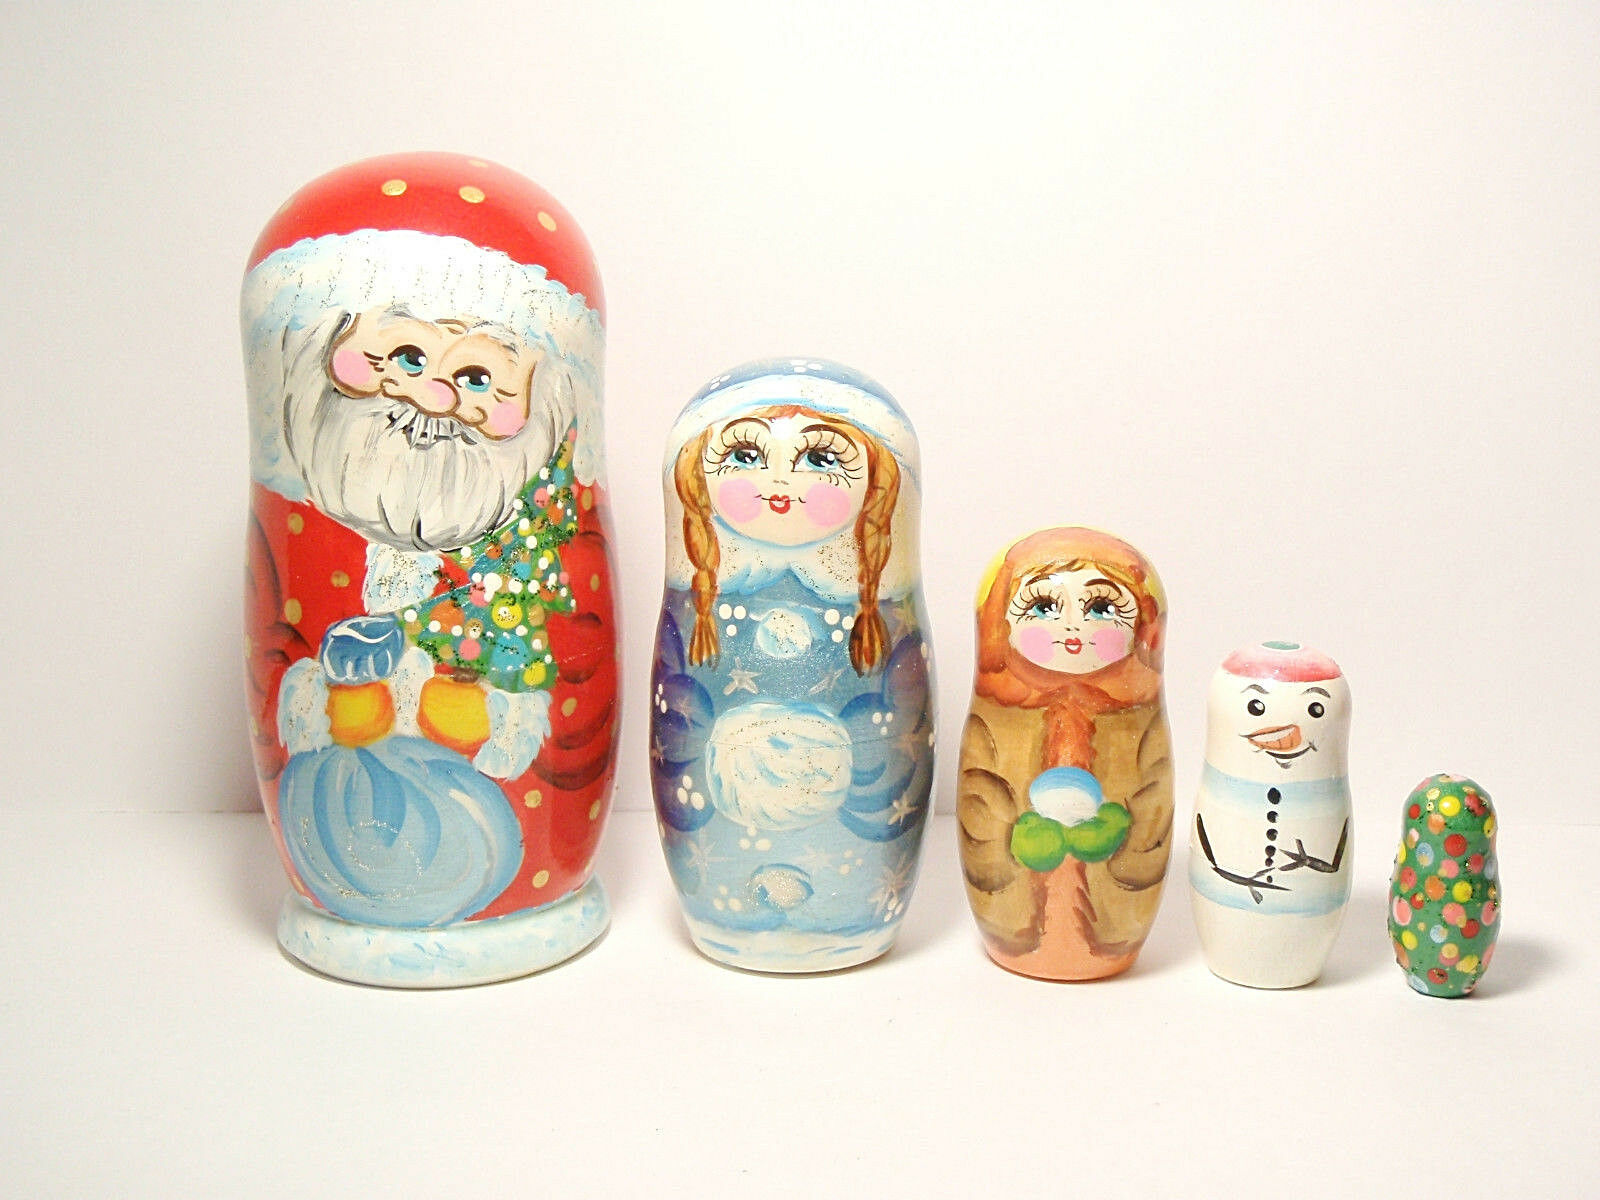 Nesting Doll - Santa Claus and Helpers, Matryoshka Doll 5 pieces 6.2  16cm